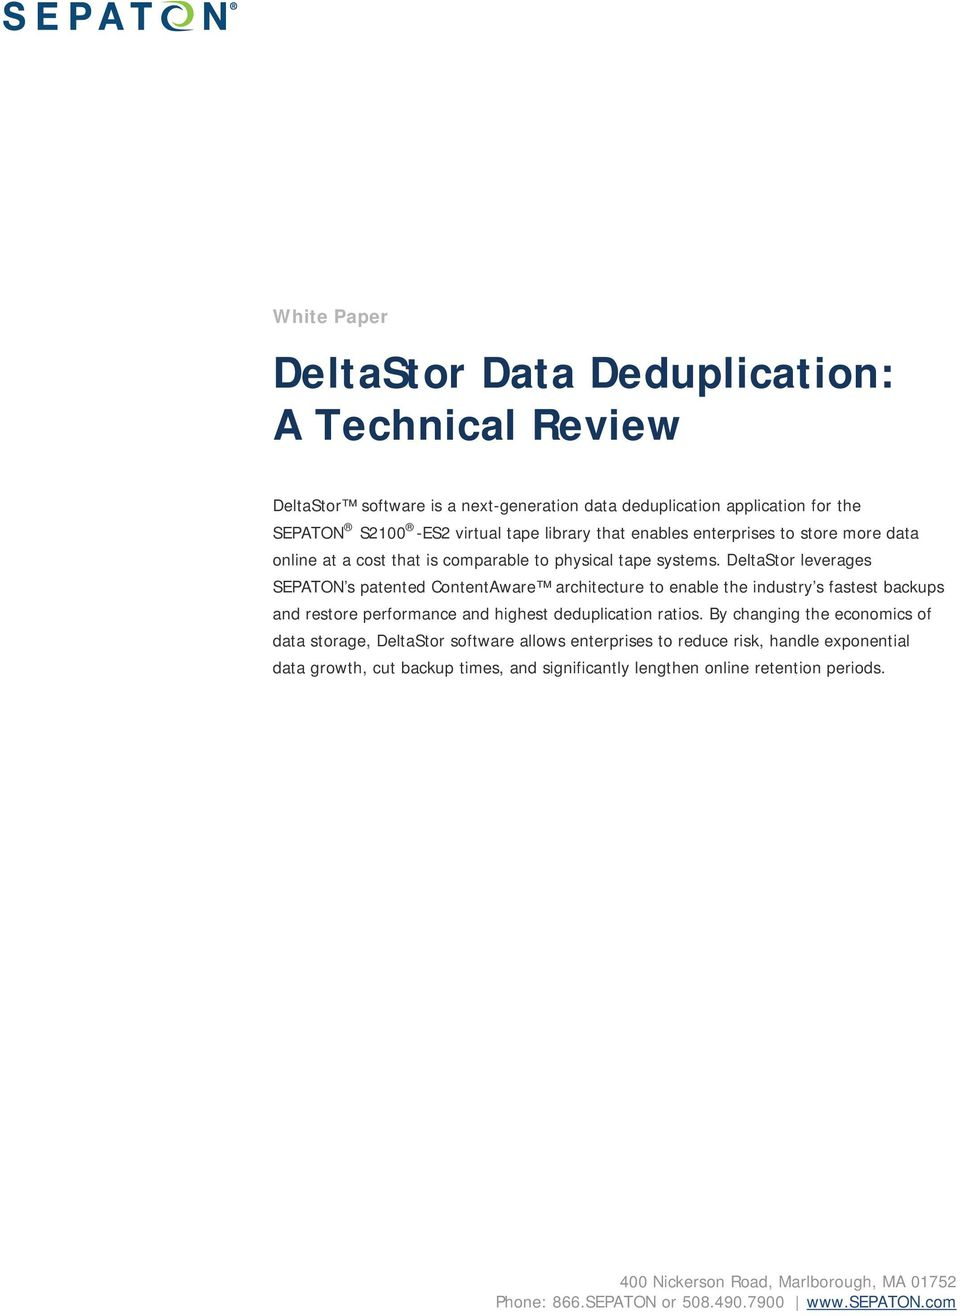 DeltaStor leverages SEPATON s patented ContentAware architecture to enable the industry s fastest backups and restore performance and highest deduplication ratios.